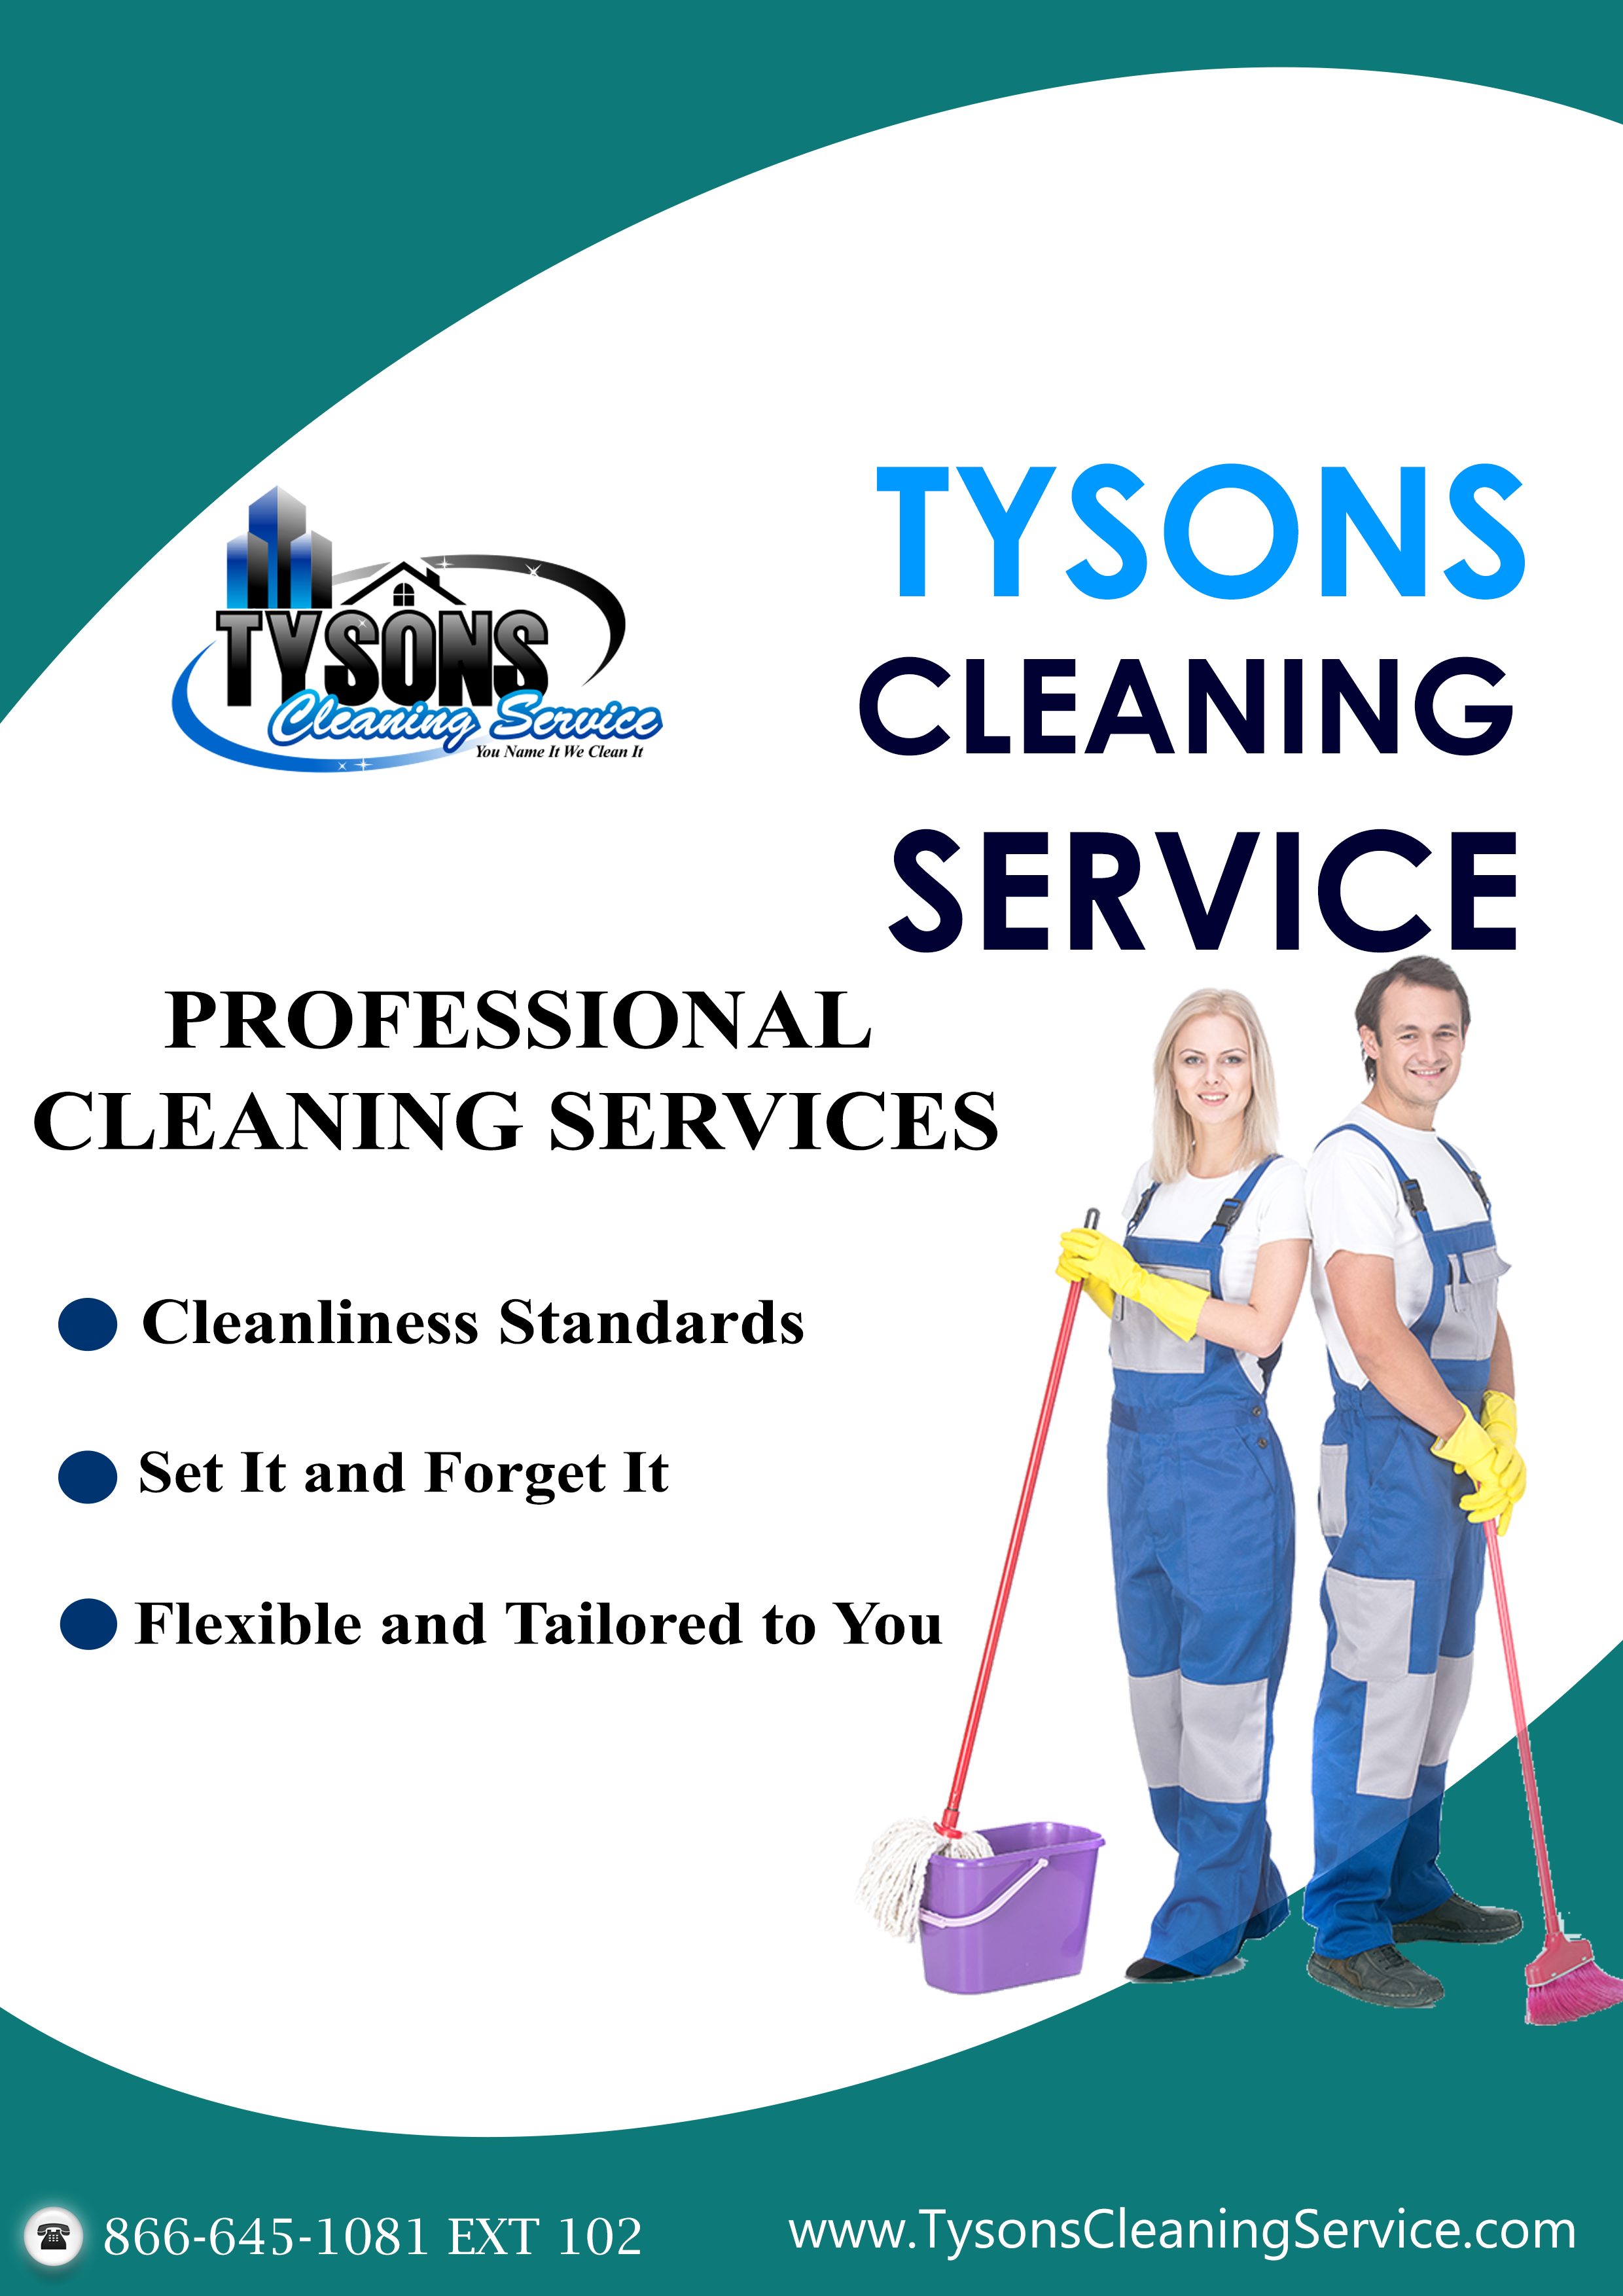 Professional Cleaning services...www.TysonsCleaningService